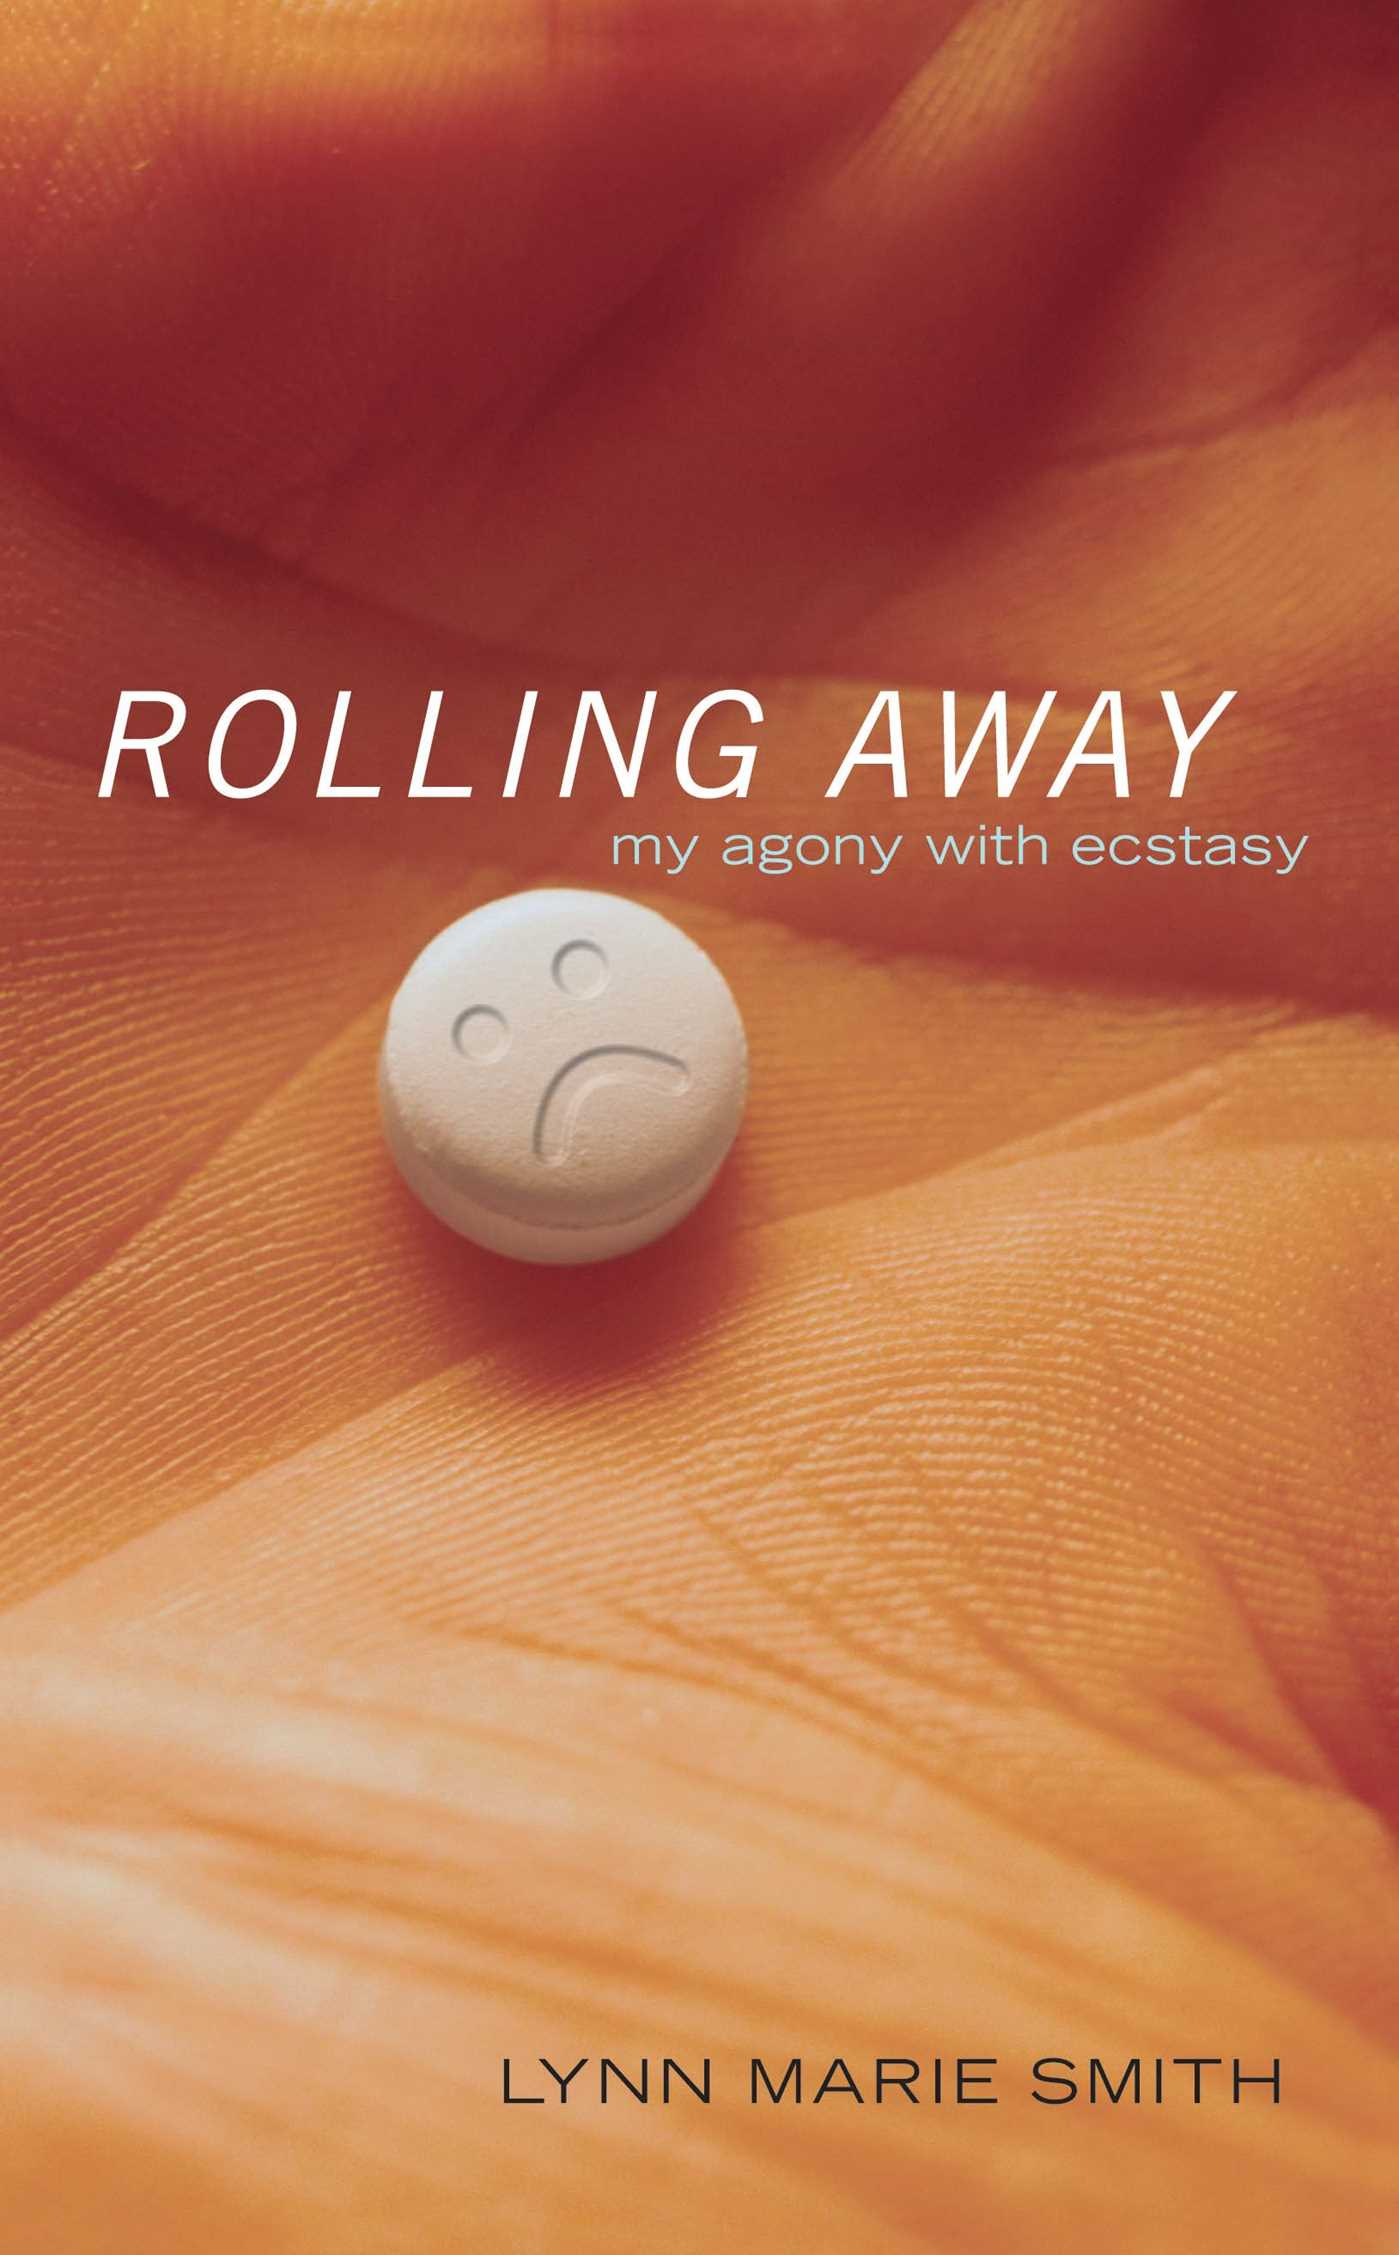 Rolling-away-9780743490443_hr